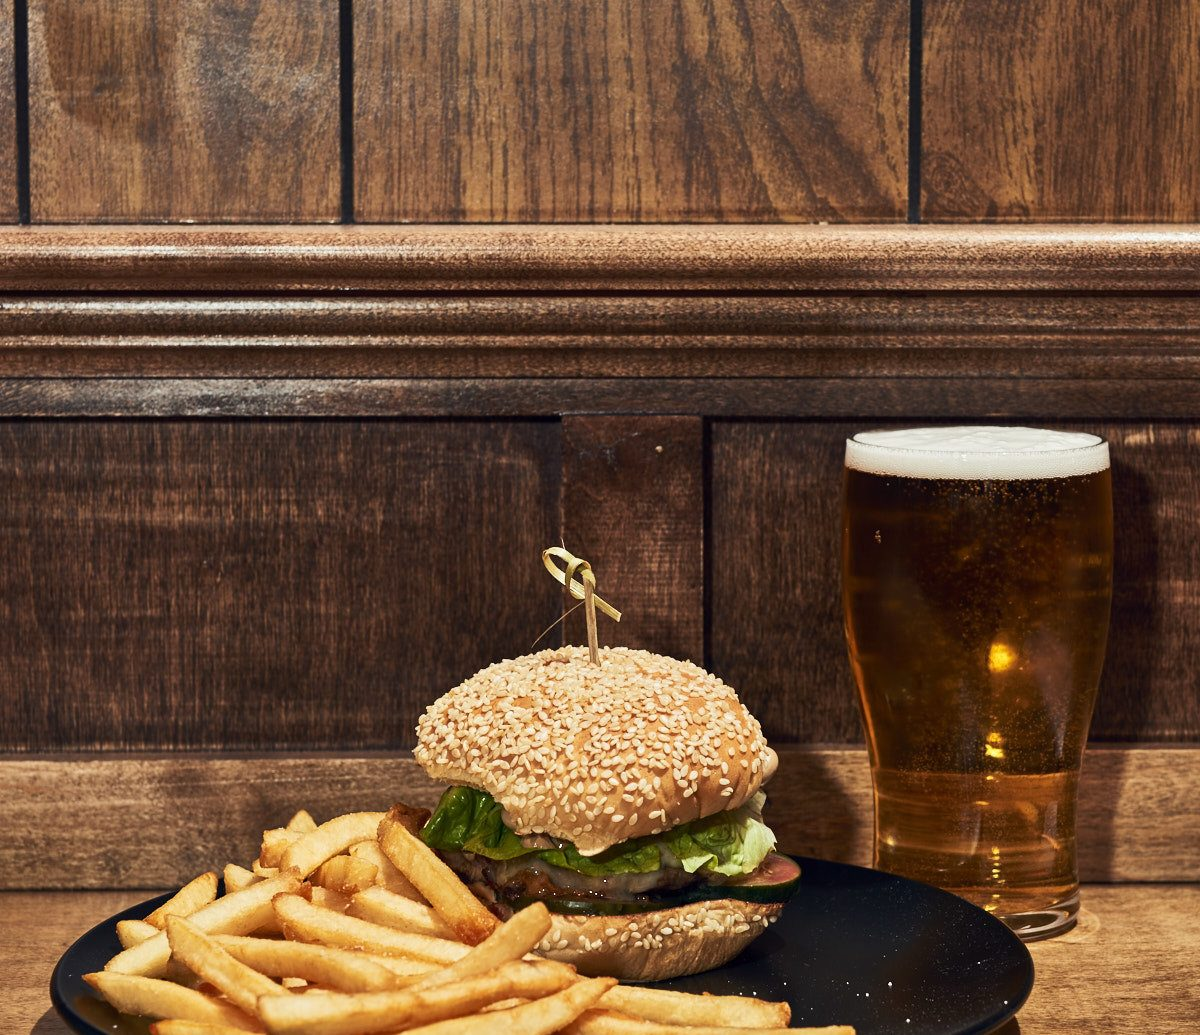 Food + Drink Trip Ideas table food fast food dish wooden junk food cuisine finger food hamburger still life sandwich